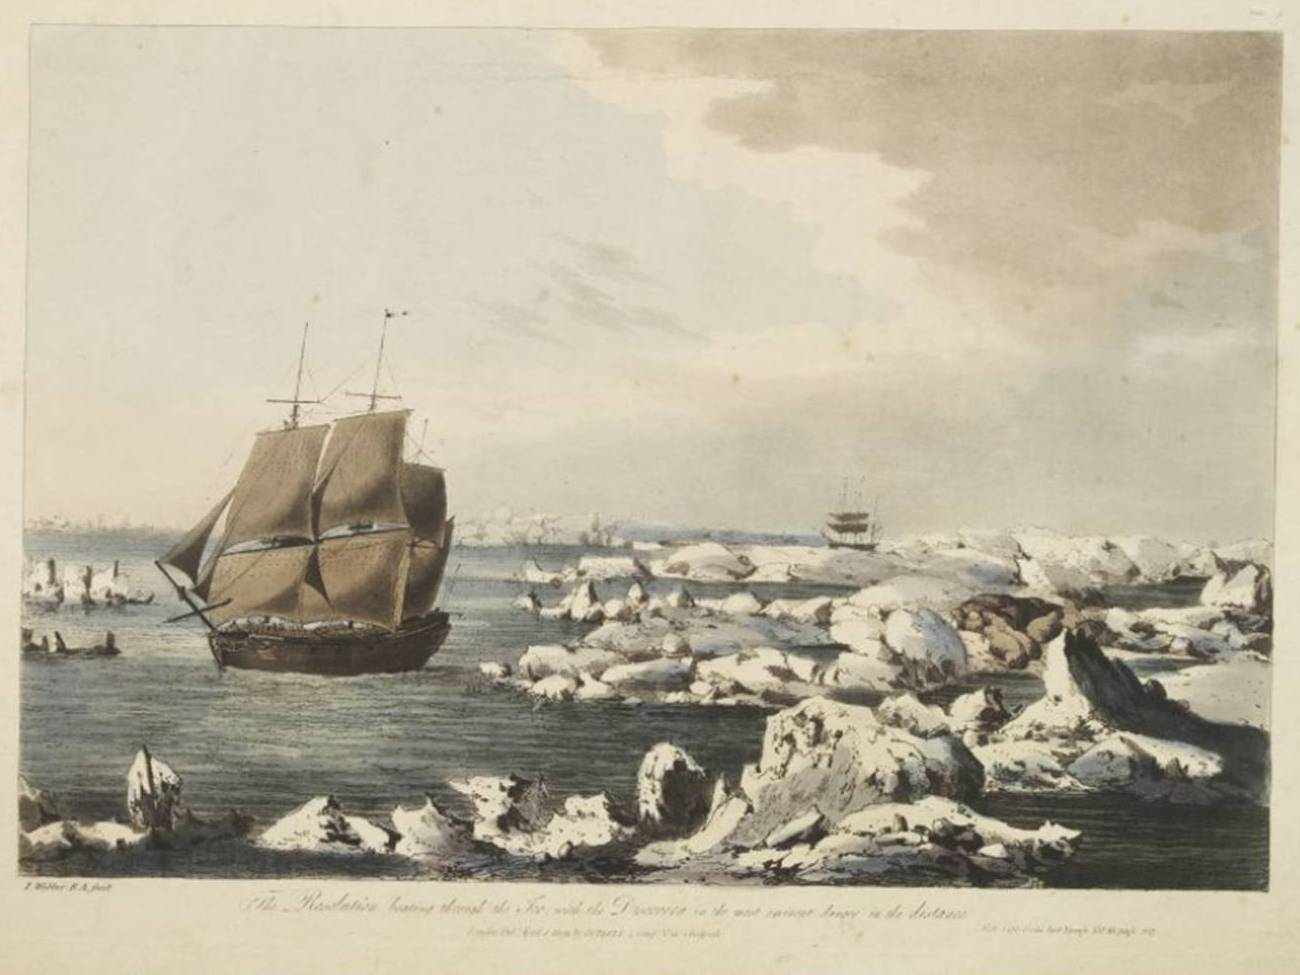 Etching of The Resolution sailing through ice.